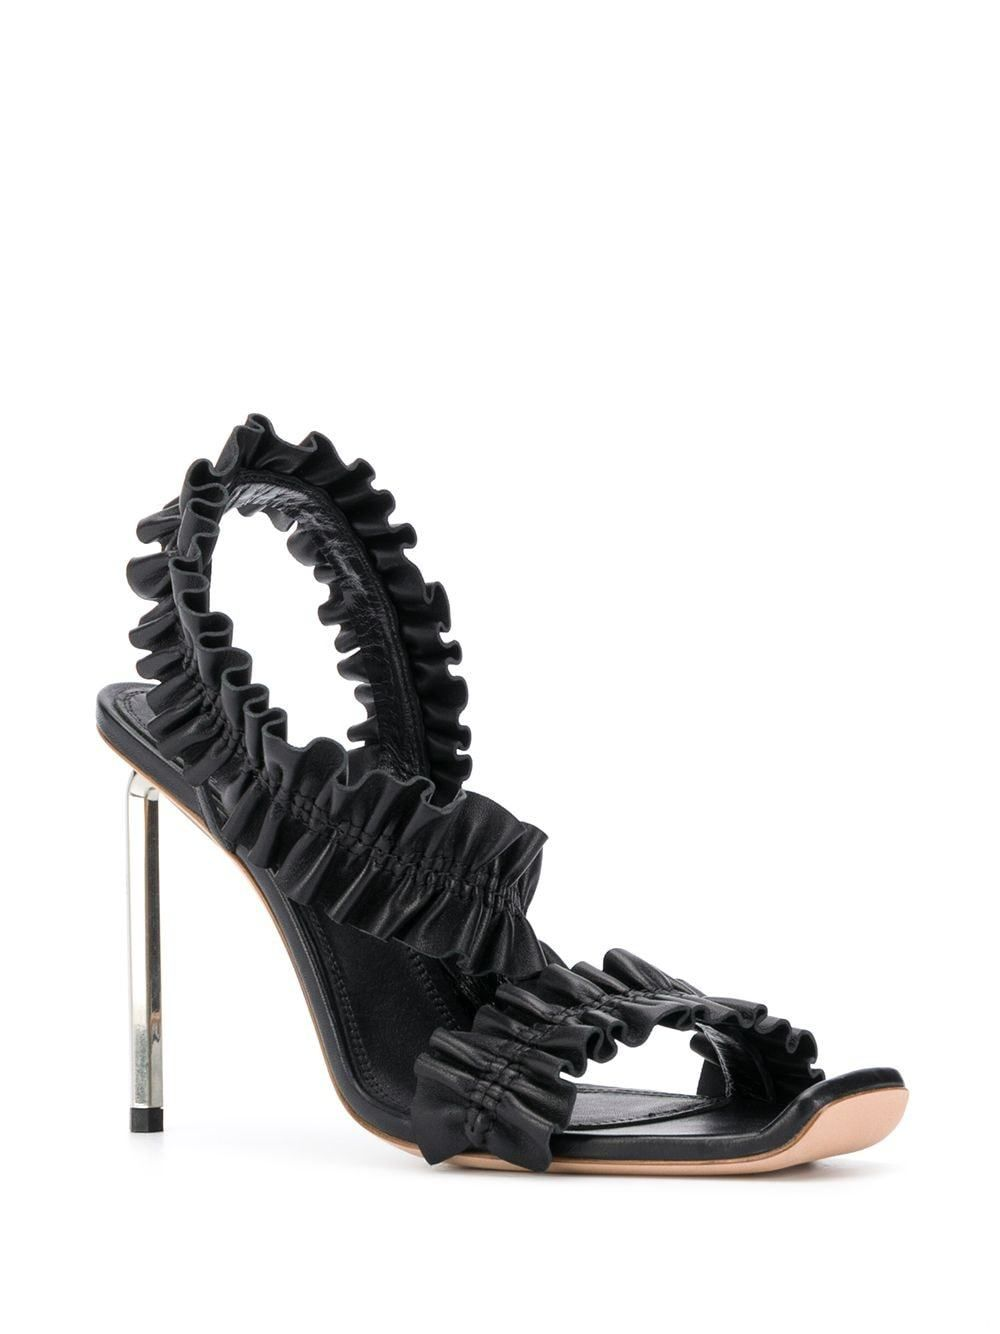 OFF-WHITE Nappa Sandal Black - Maison De Fashion